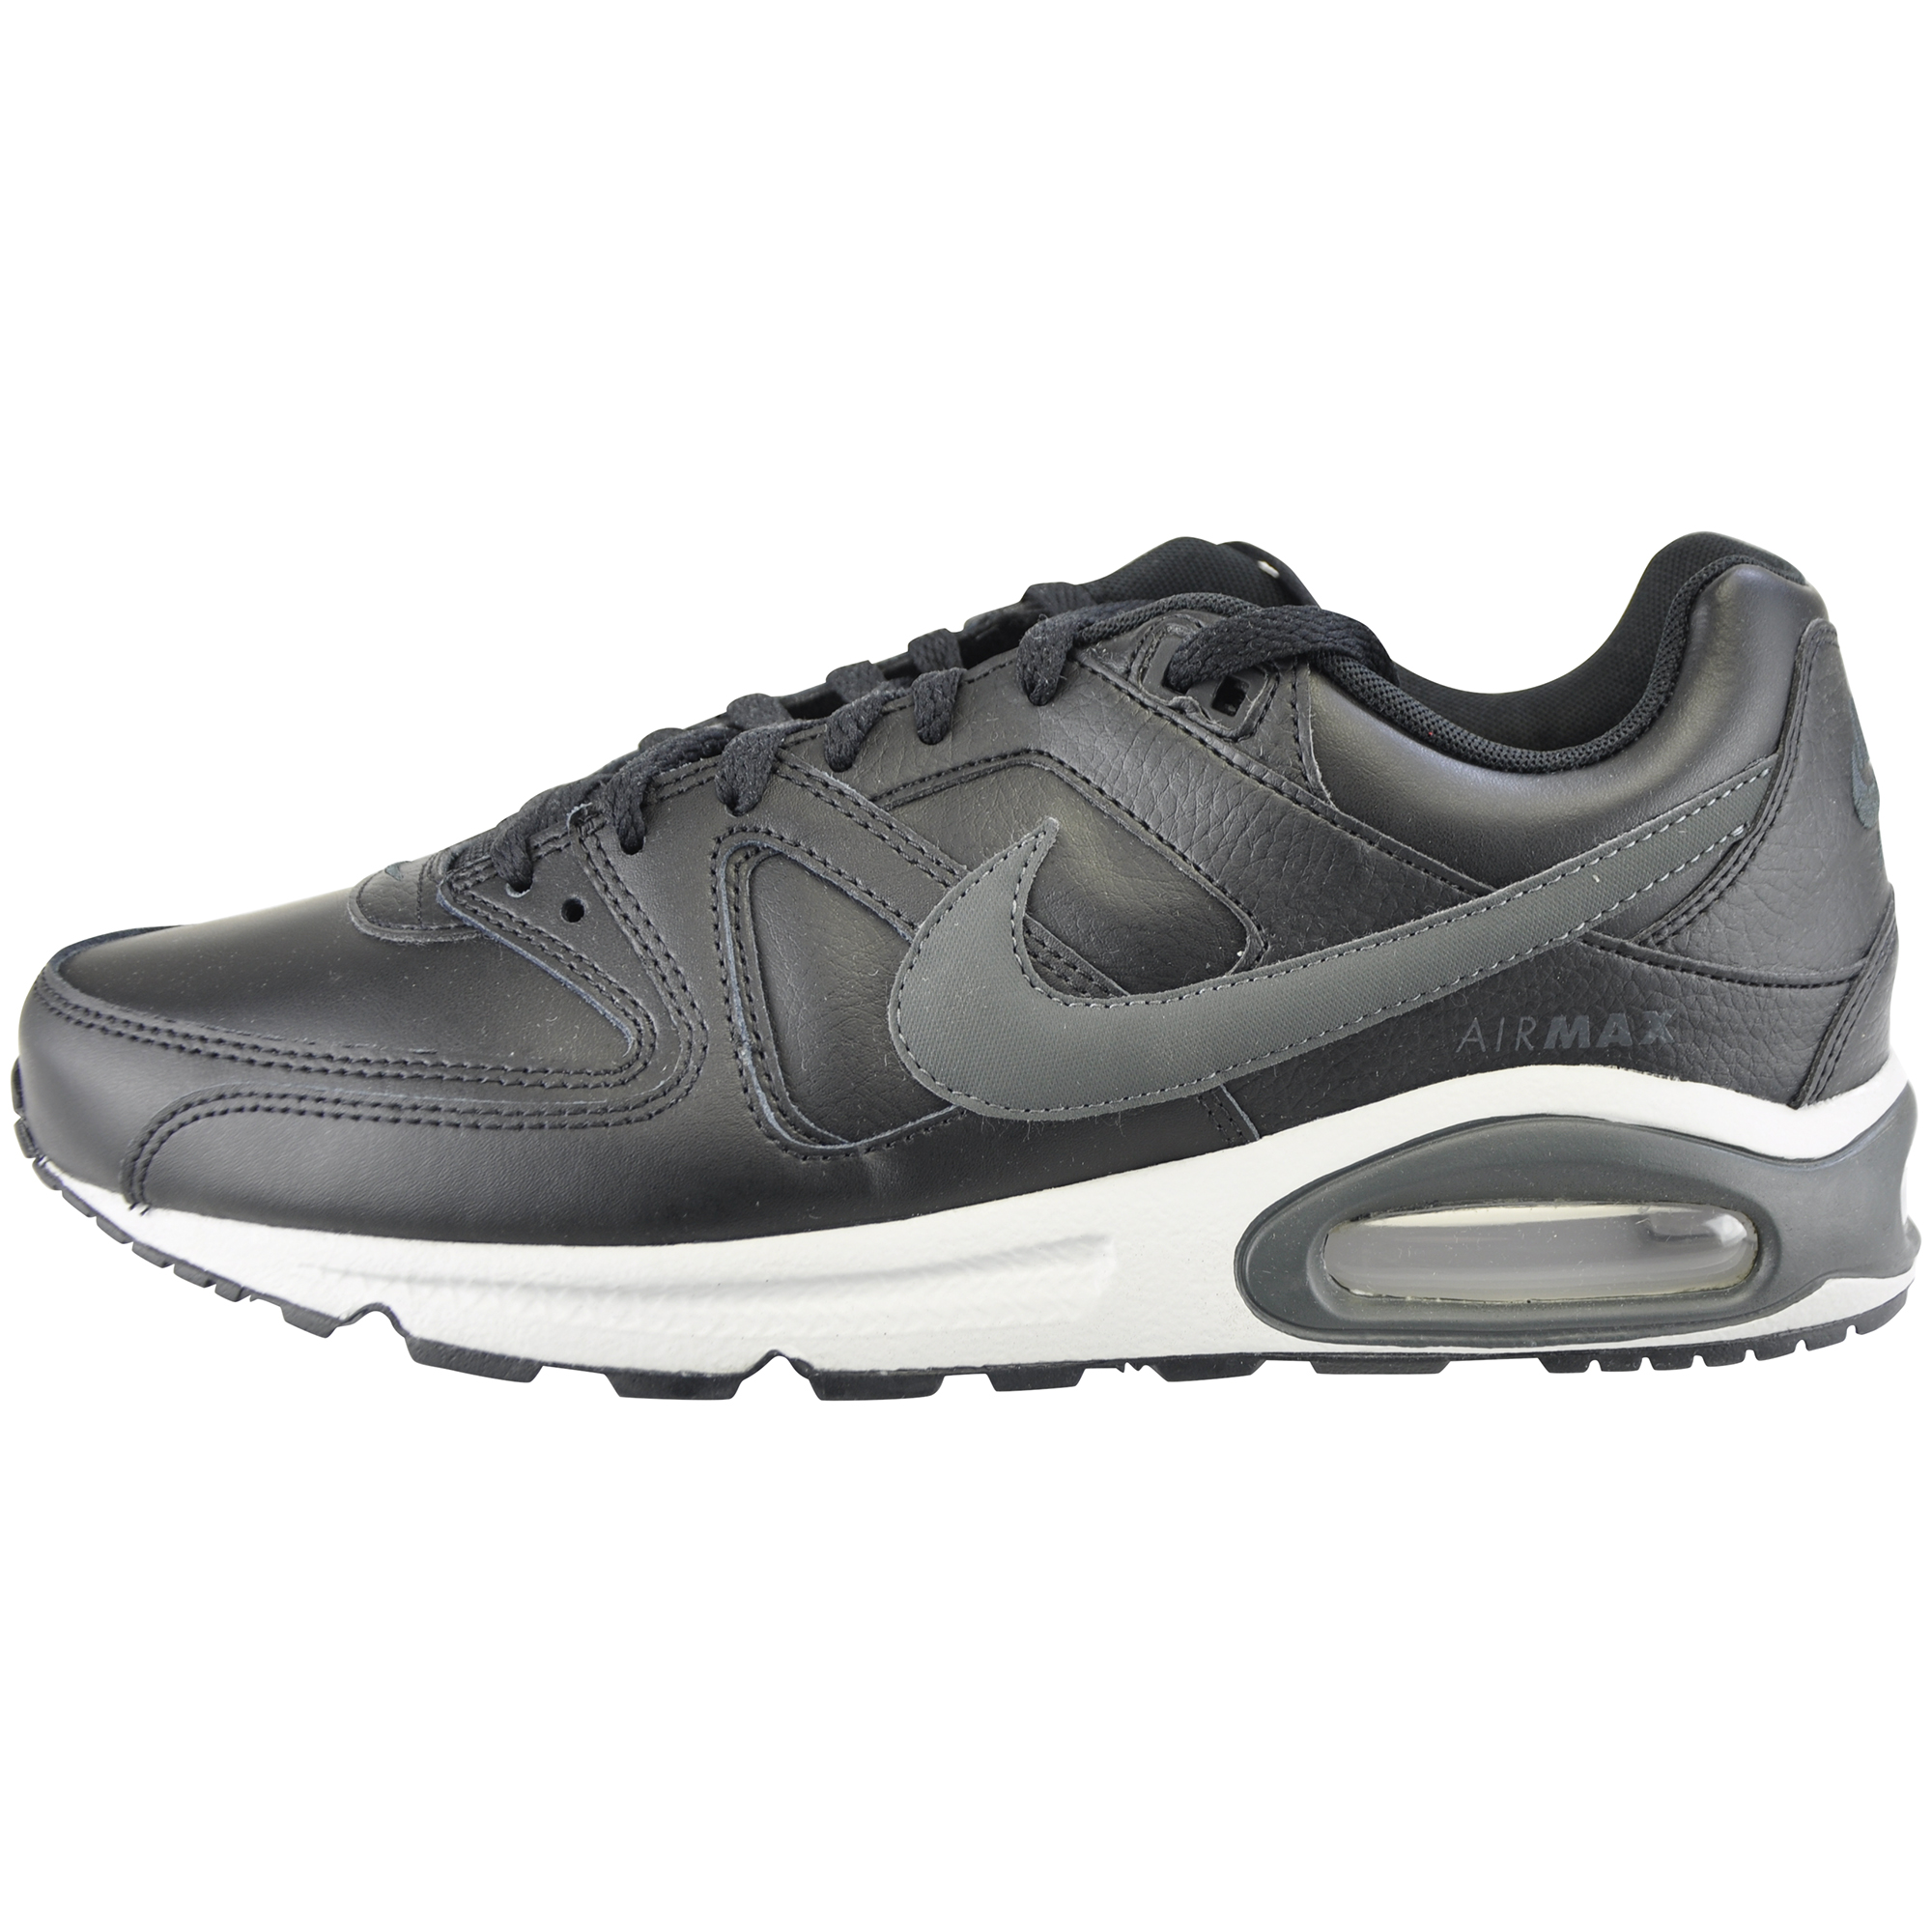 nike air max 90 essential command 1 ultra br ltr lifestyle. Black Bedroom Furniture Sets. Home Design Ideas